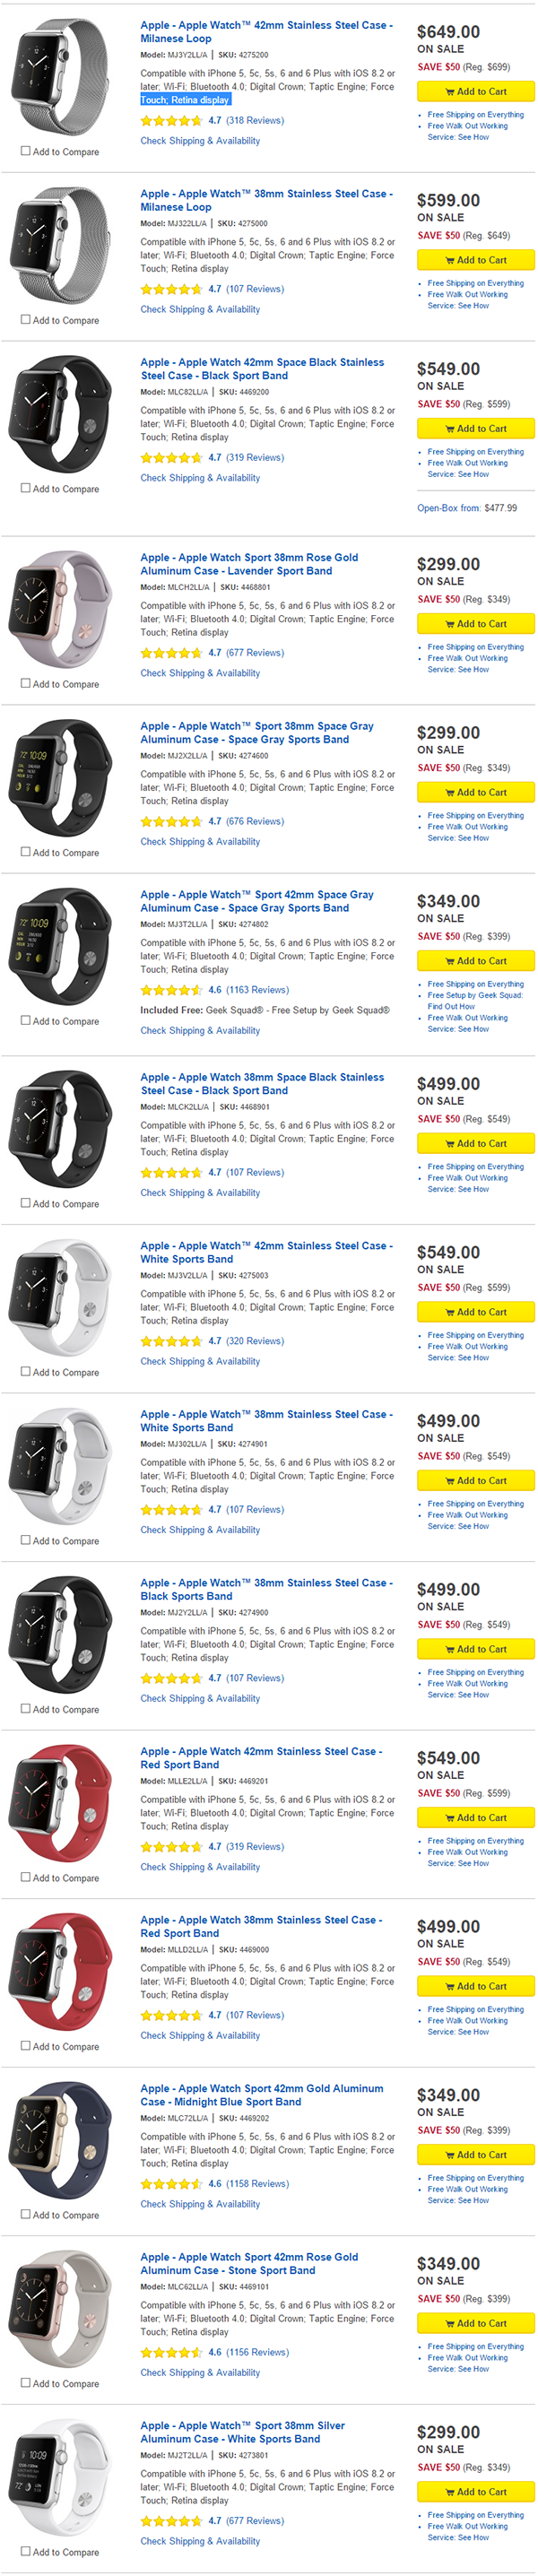 apple-watch-discounted